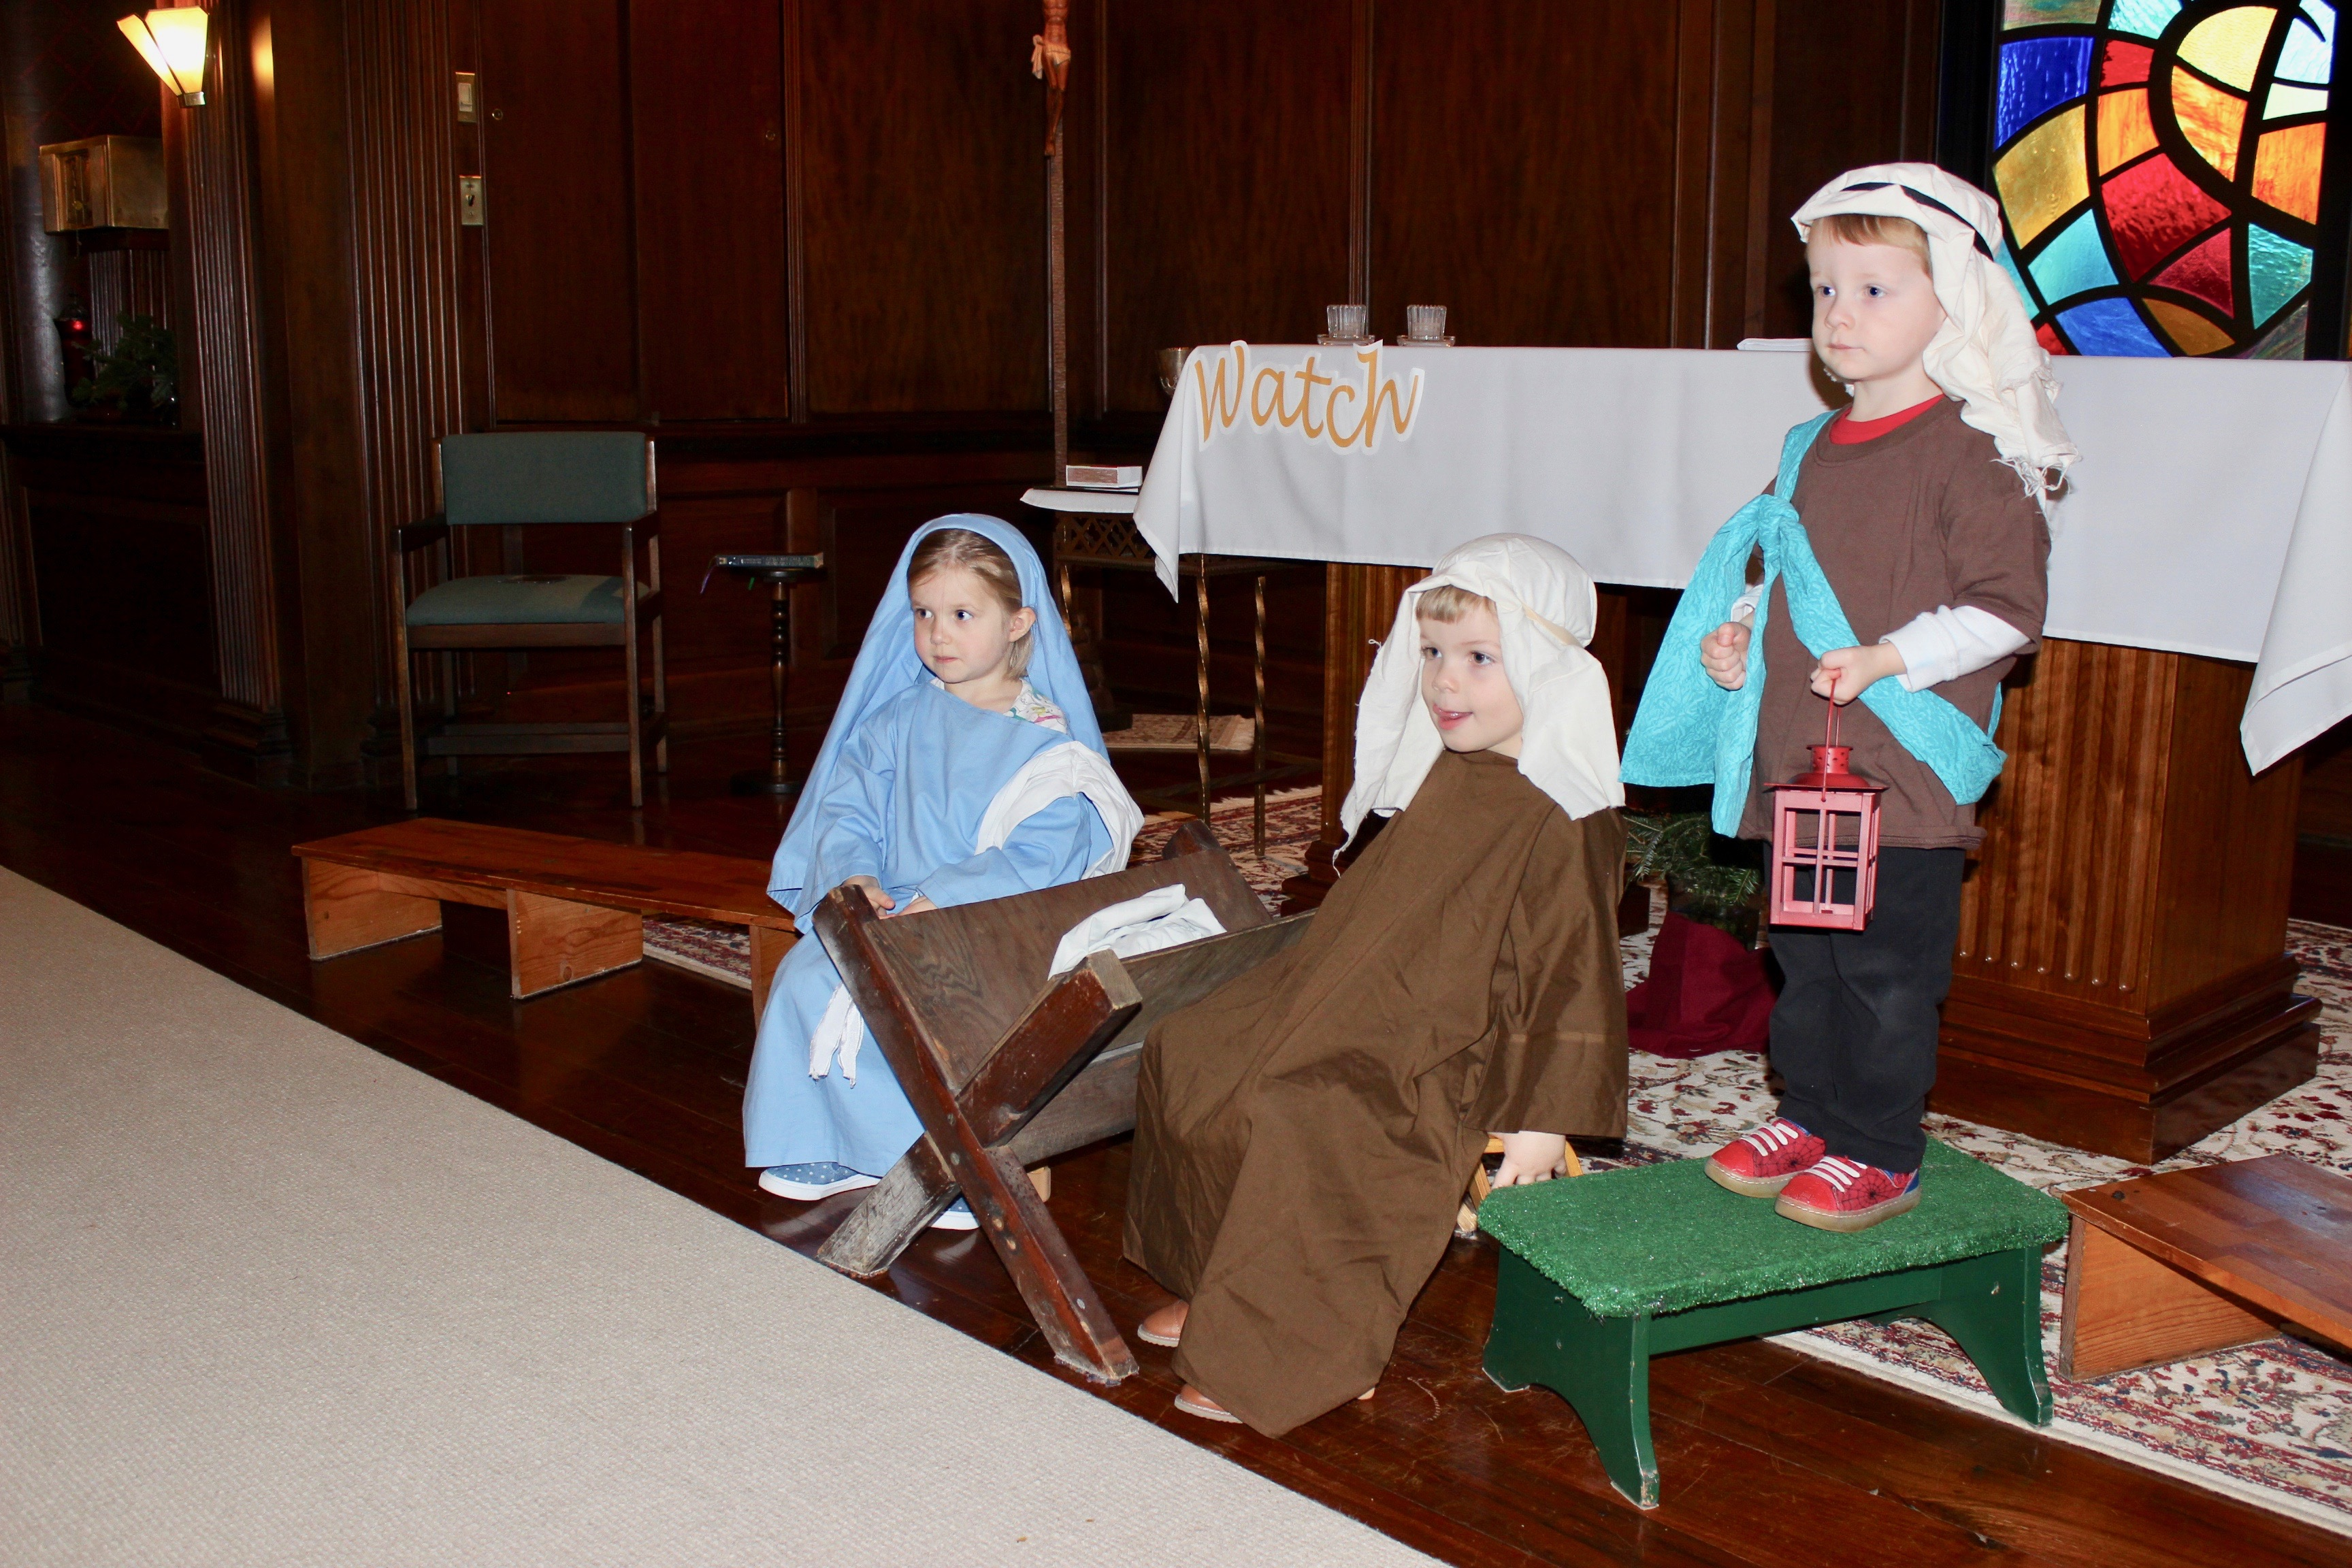 Young children in costume in a nativity scene